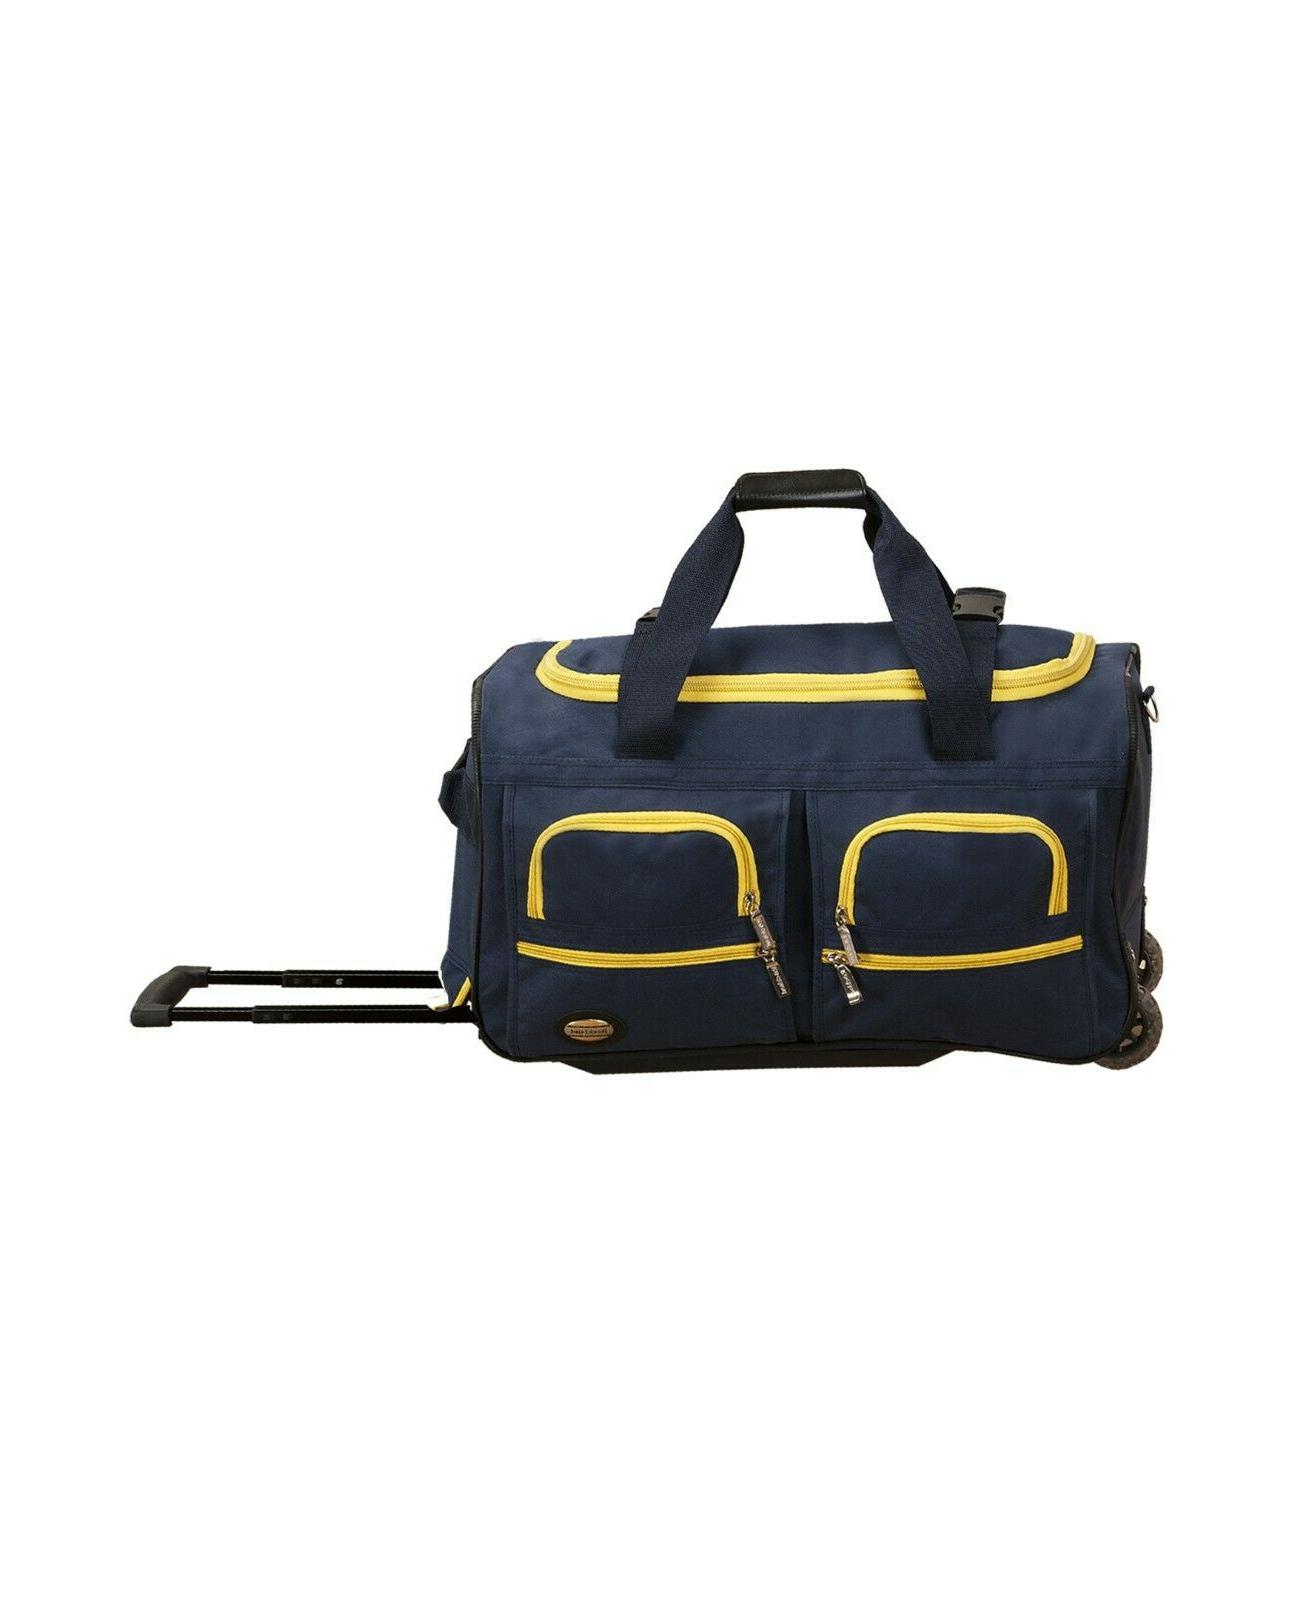 Rockland Luggage Blue with Yellow Rolling With Wheels